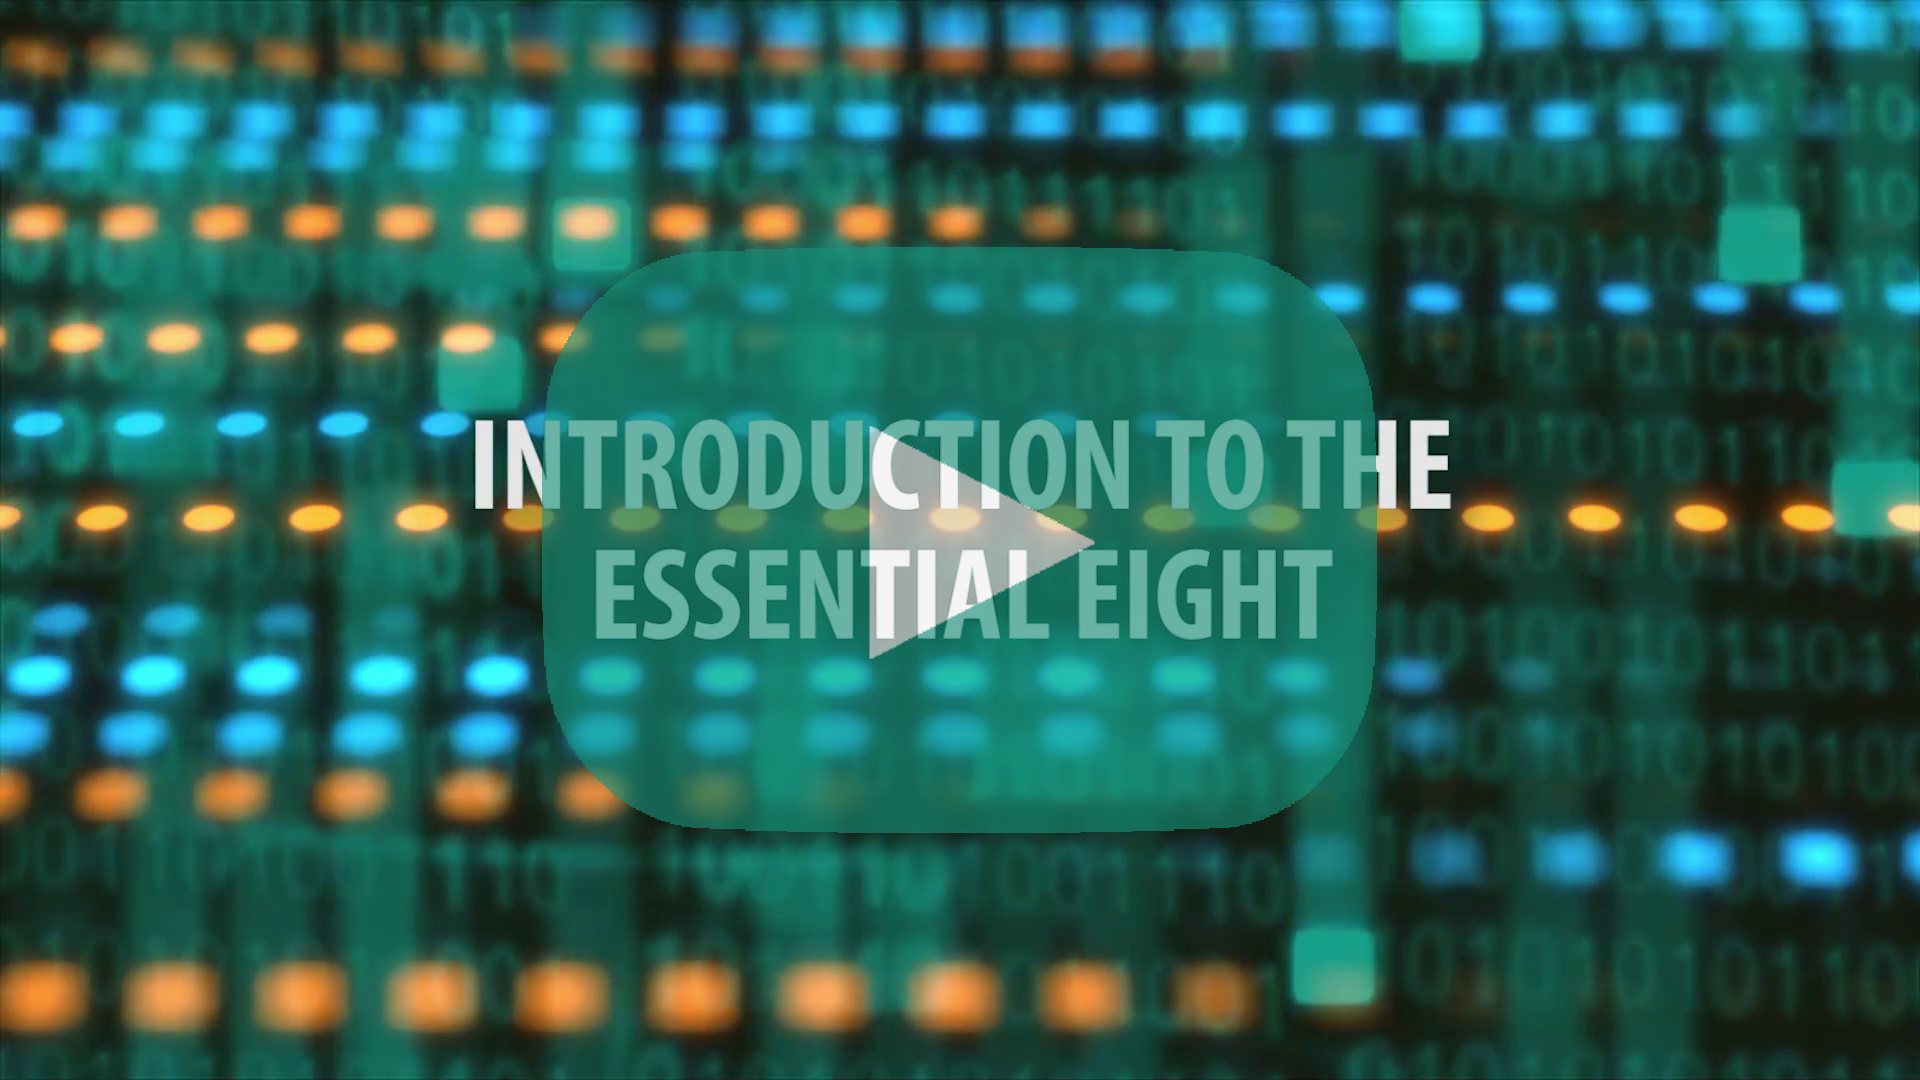 What is the Essential Eight?